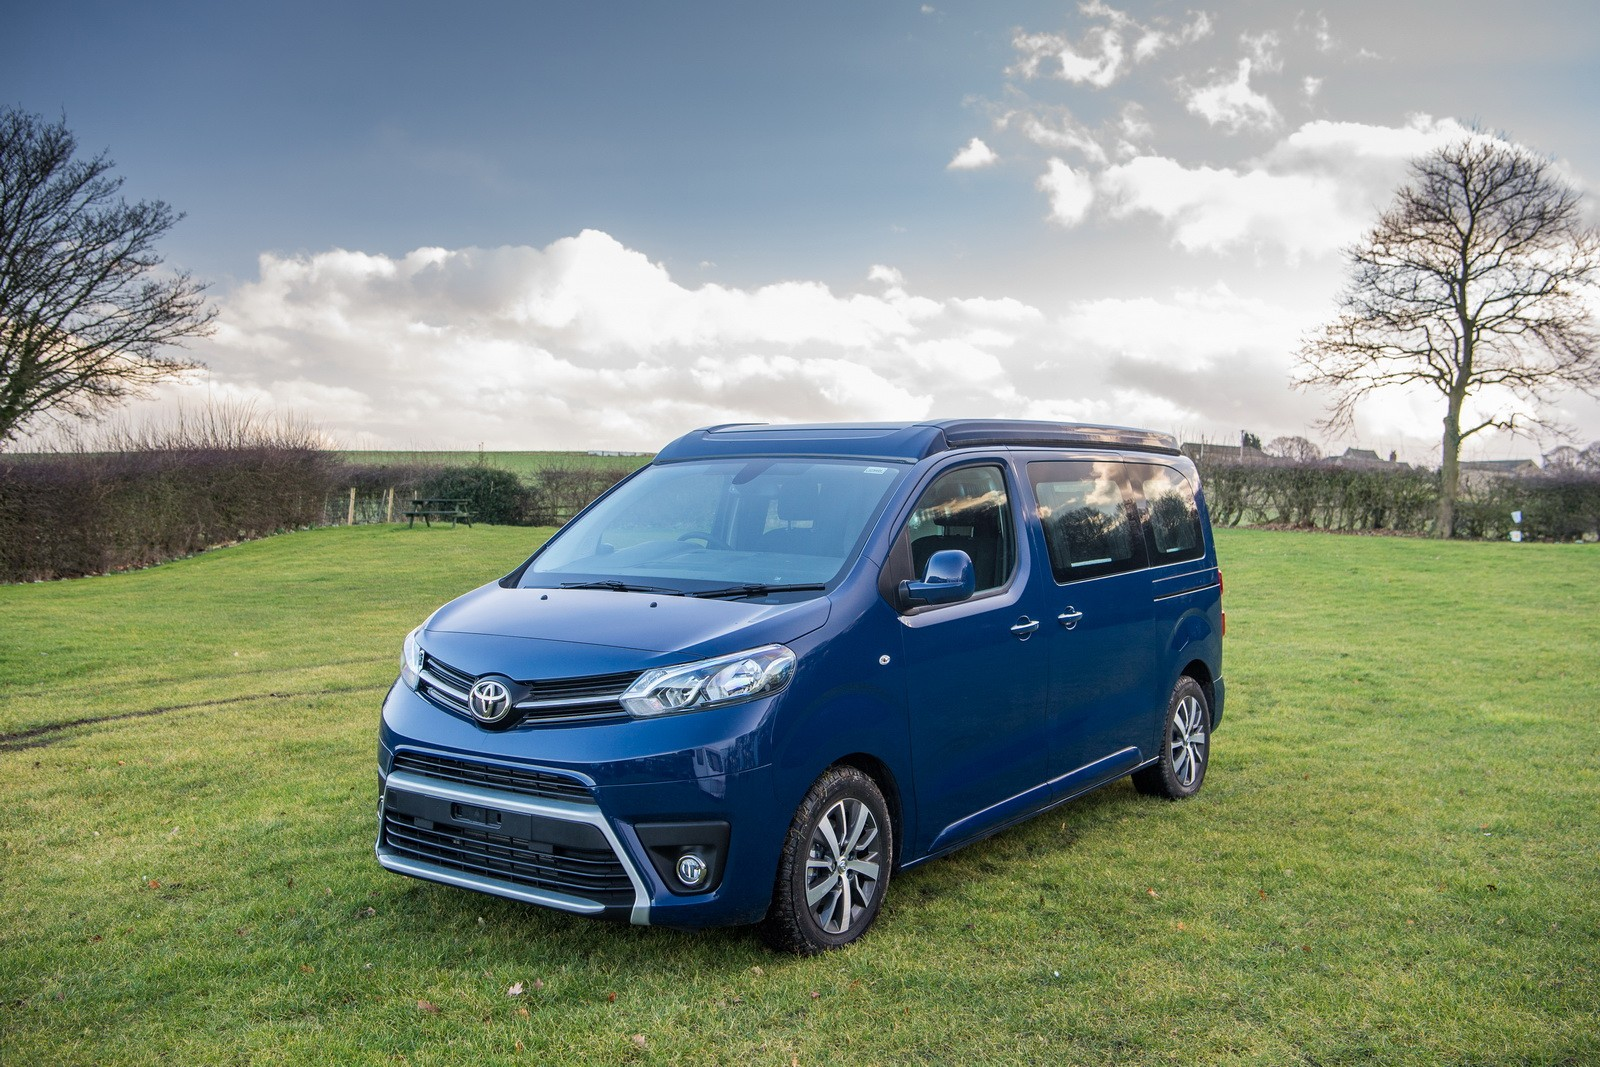 toyota proace lerina camper van looks set to rival vw california autoevolution. Black Bedroom Furniture Sets. Home Design Ideas